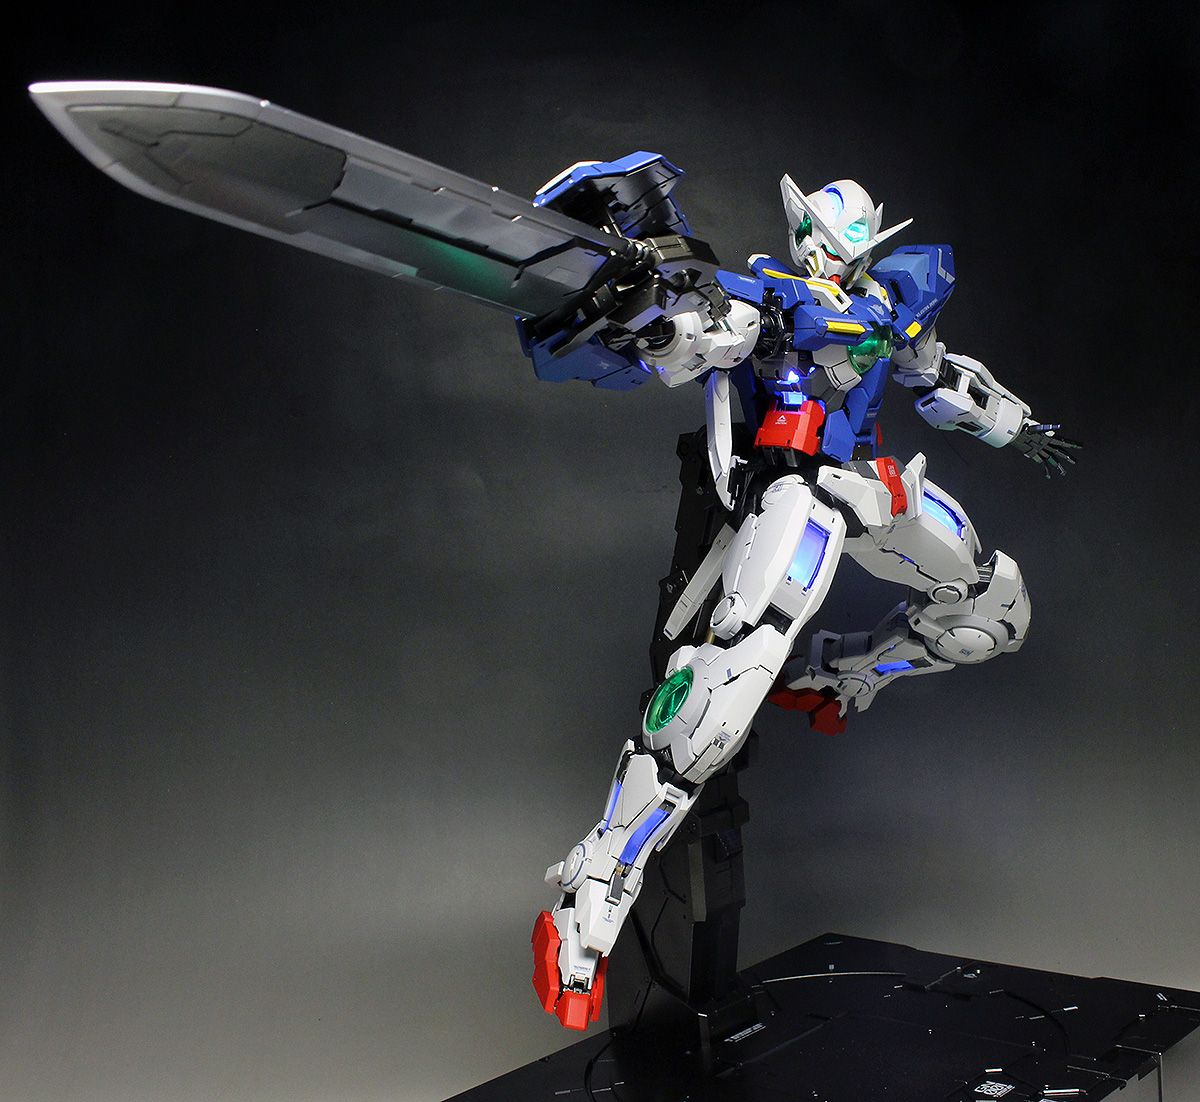 [WORK REVIEW] PG 1/60 GUNDAM EXIA LIGHTING MODEL painted build: No.40 Big Size Images | GUNJAP